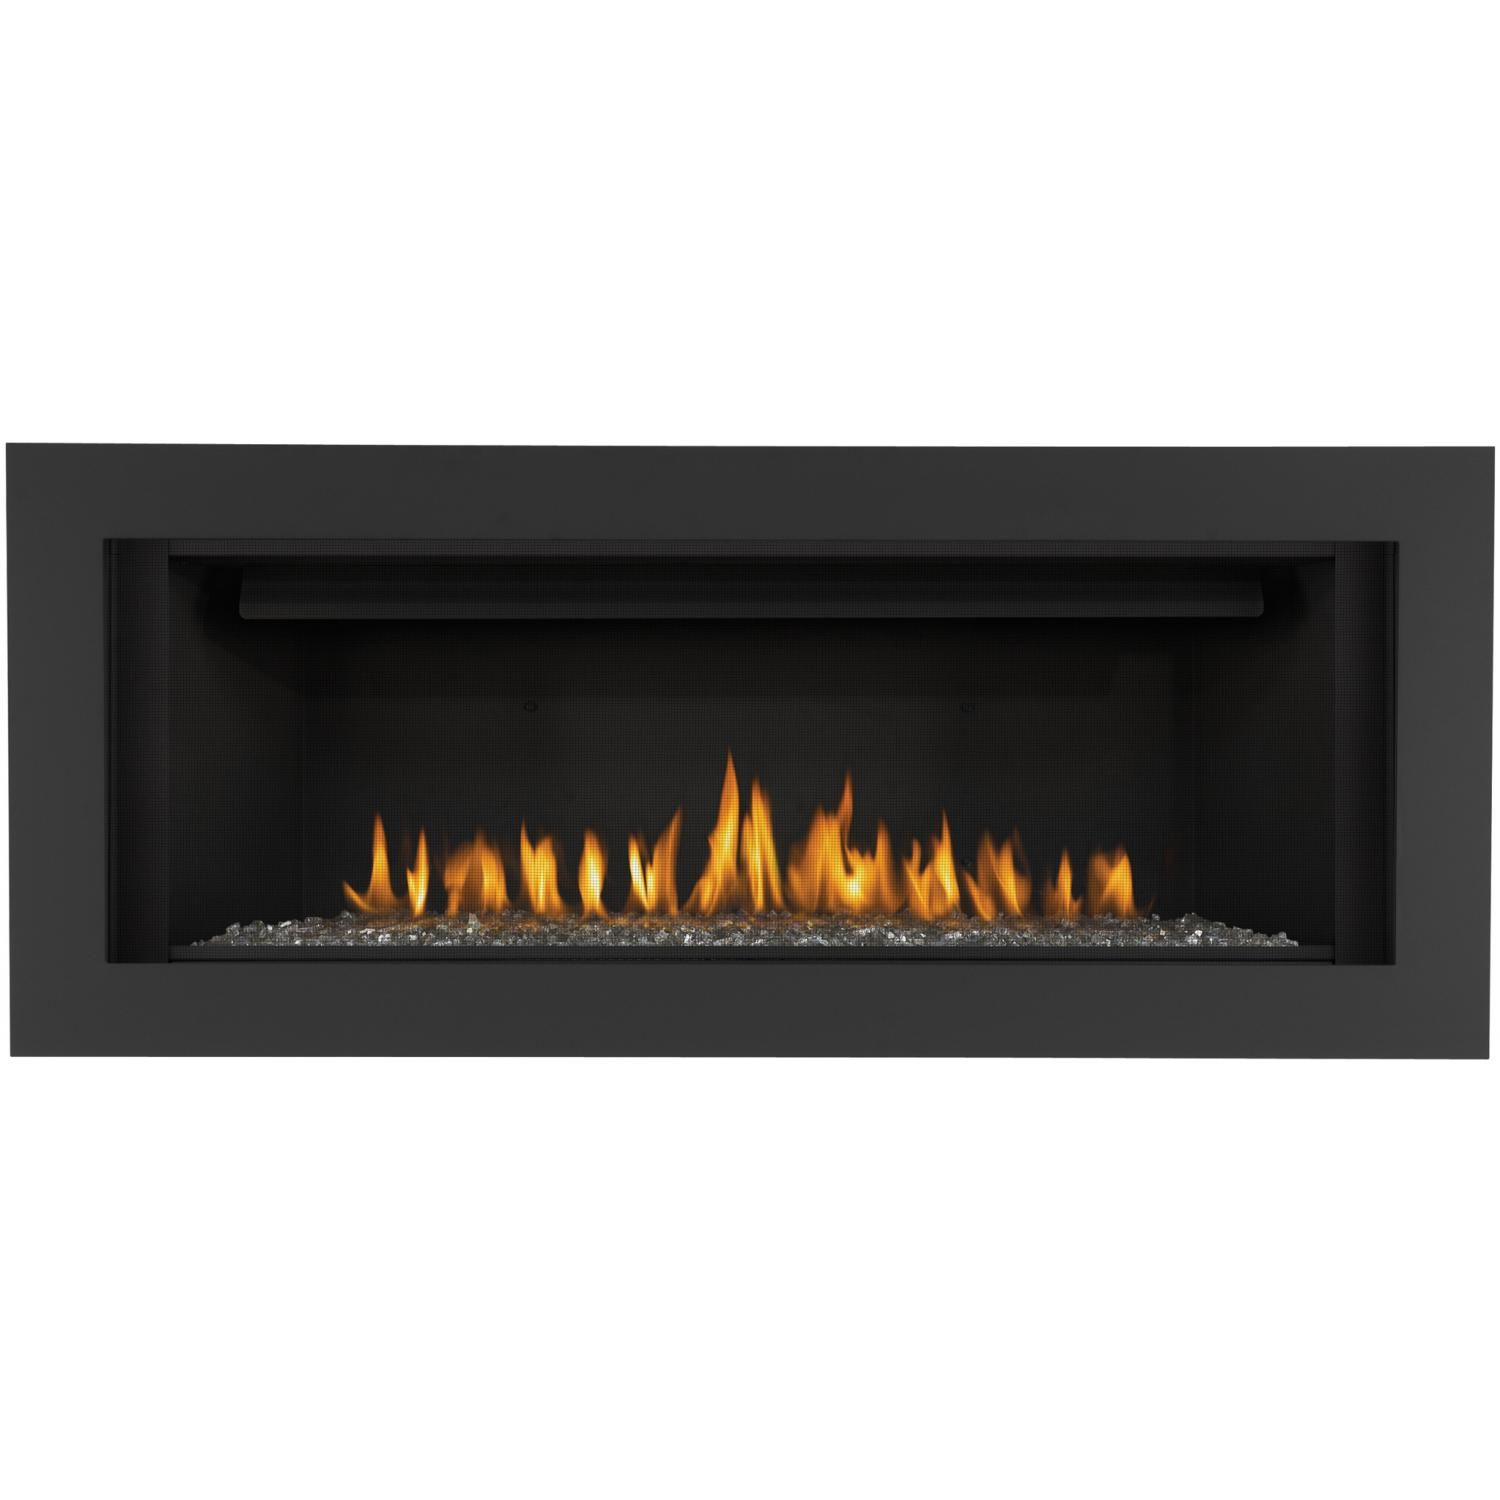 Napoleon linear inch builtin direct vent propane gas fireplace w